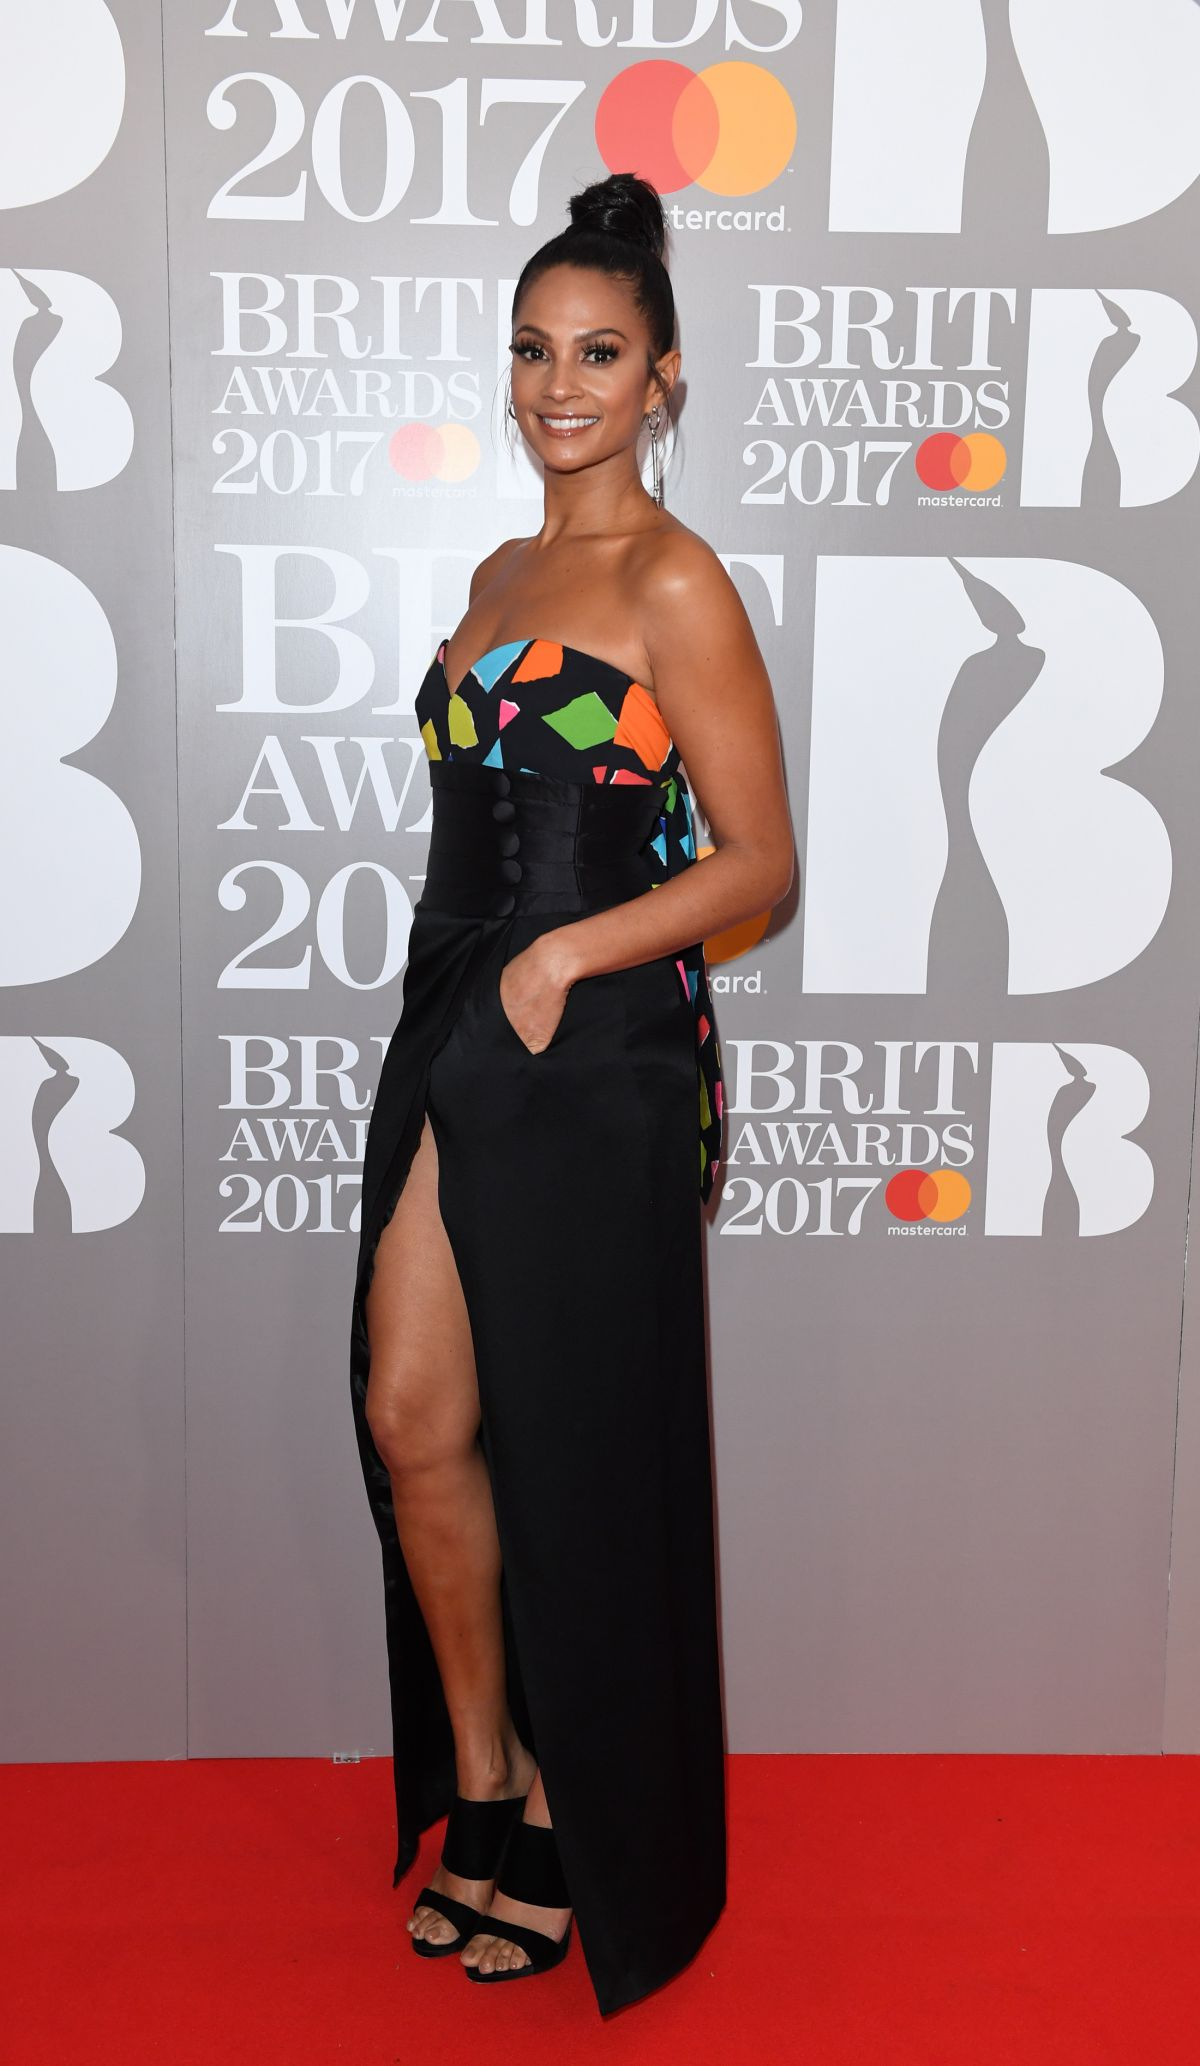 ALESHA DIXON at Brit Awards 2017 in London 02/22/2017